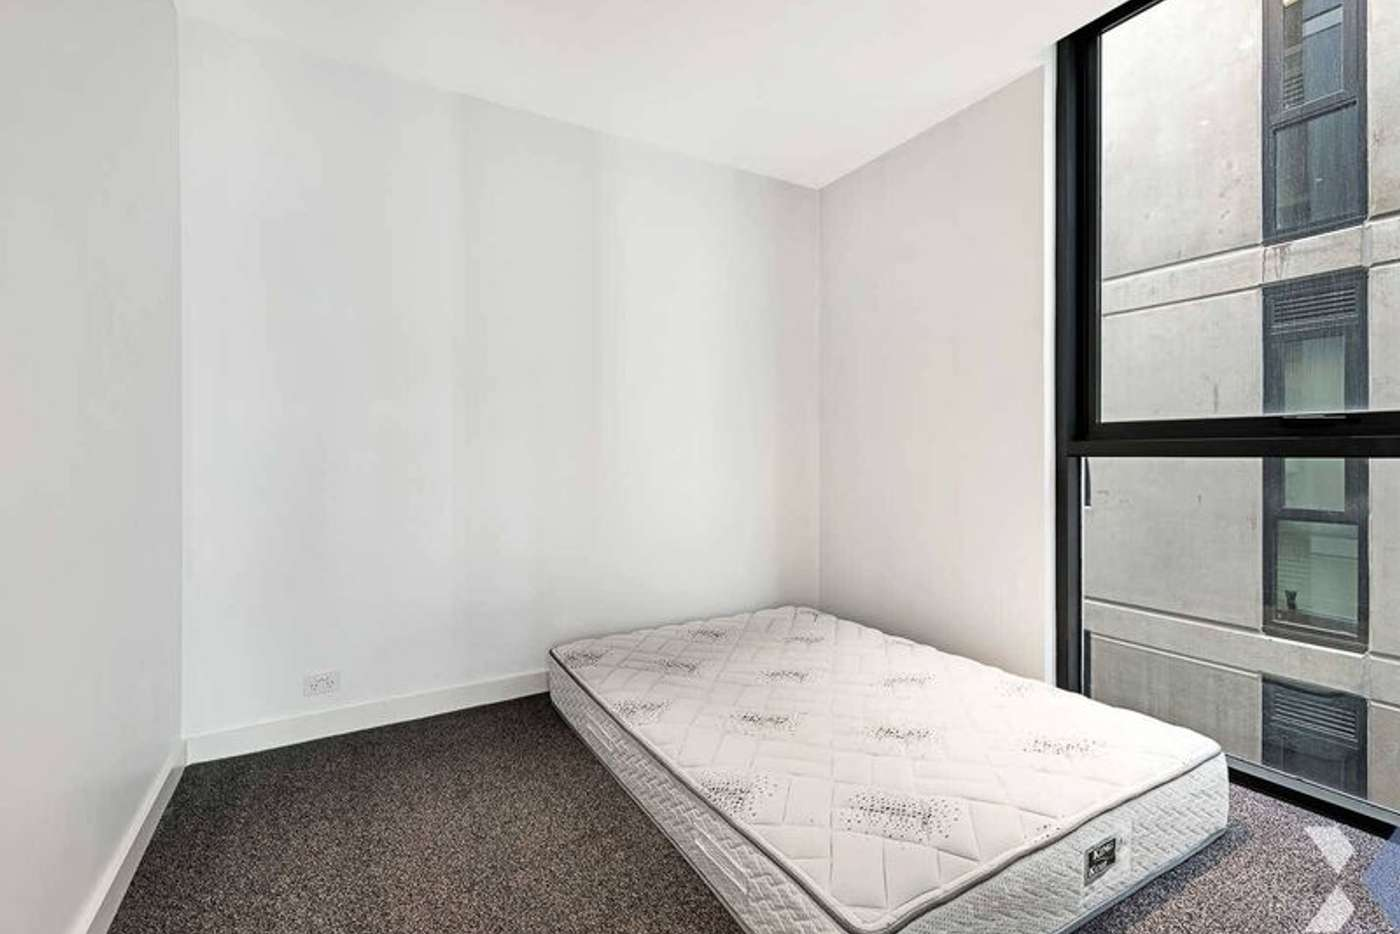 Seventh view of Homely apartment listing, 1819/39 Coventry Street, Southbank VIC 3006